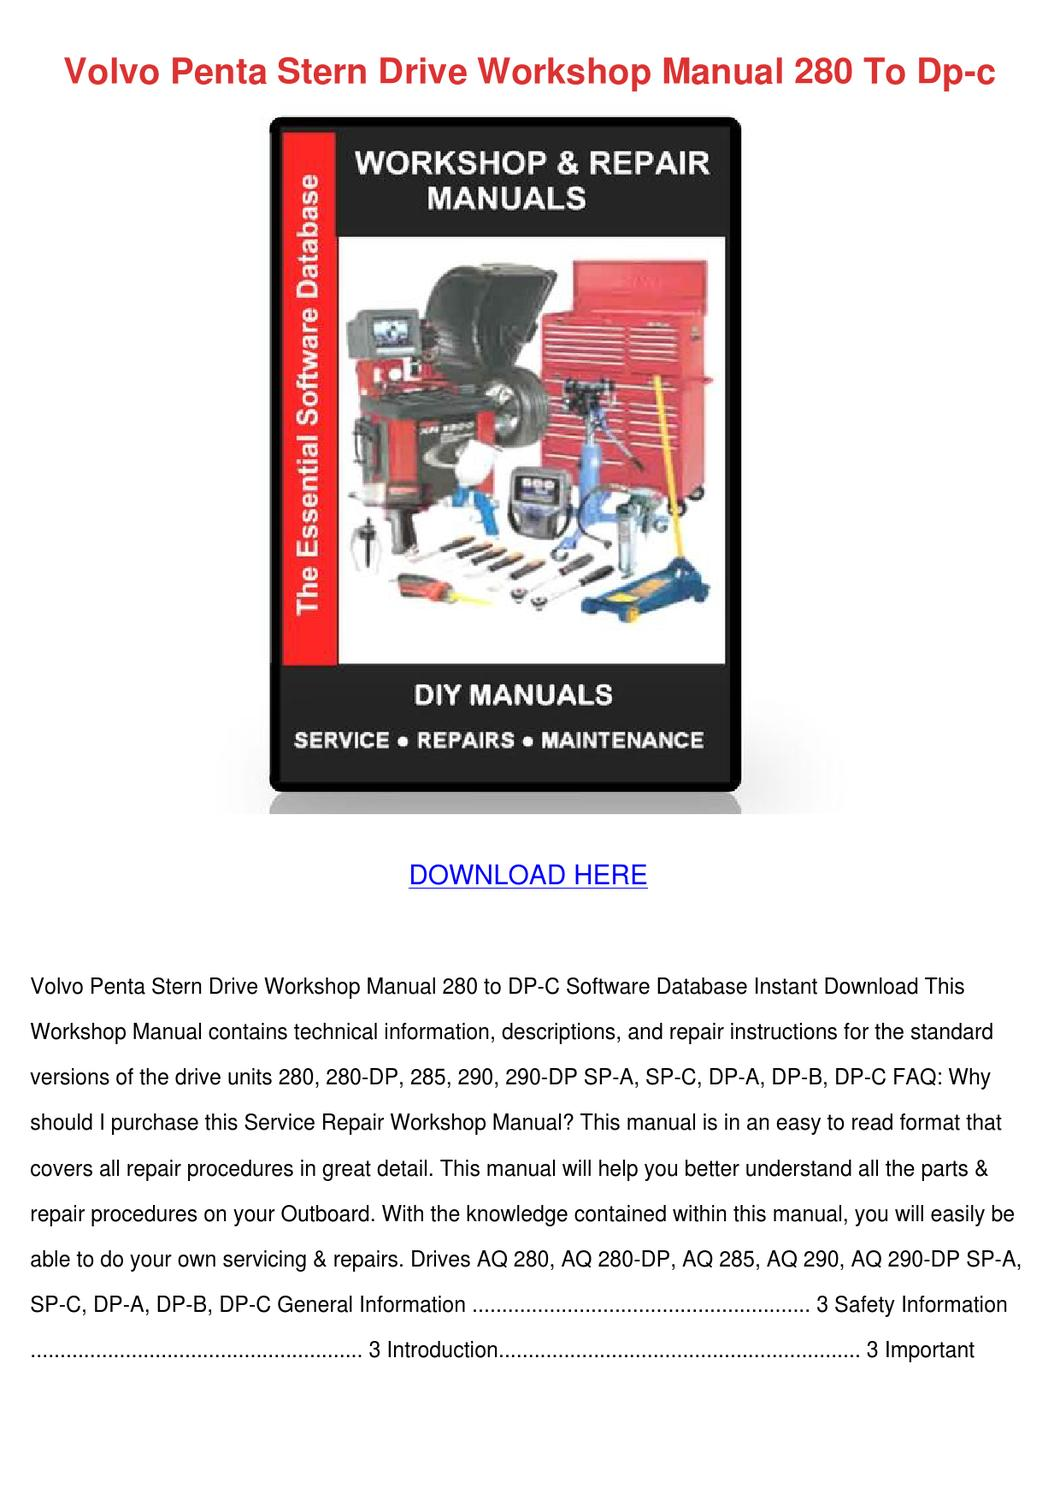 Md21a manual array volvo penta stern drive workshop manual 280 t by kendrajoyner issuu rh issuu fandeluxe